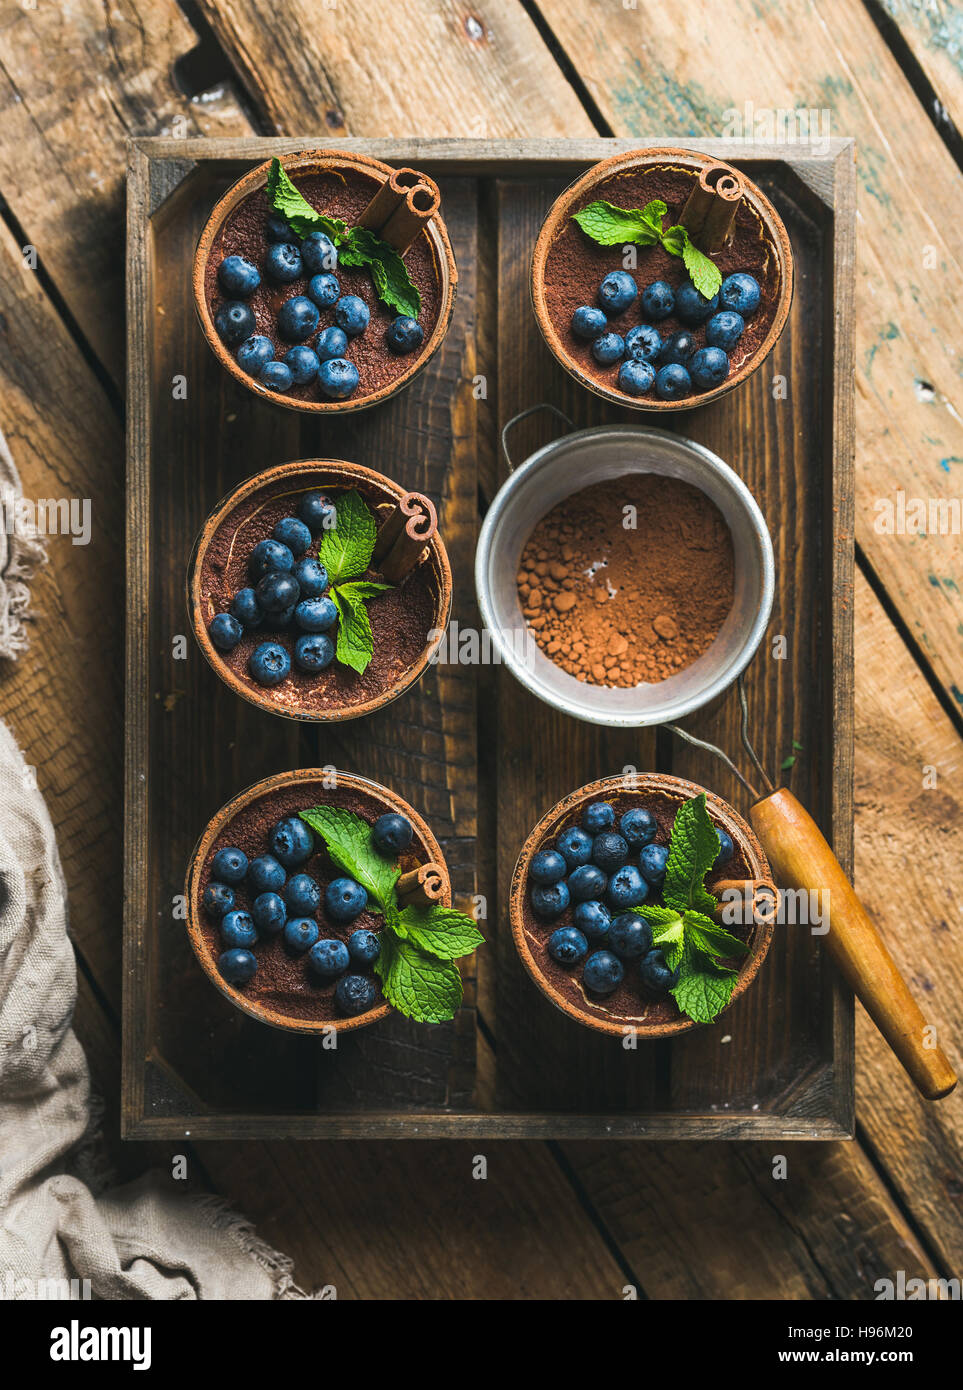 Homemade Tiramisu and sieve with cocoa powder in wooden tray - Stock Image